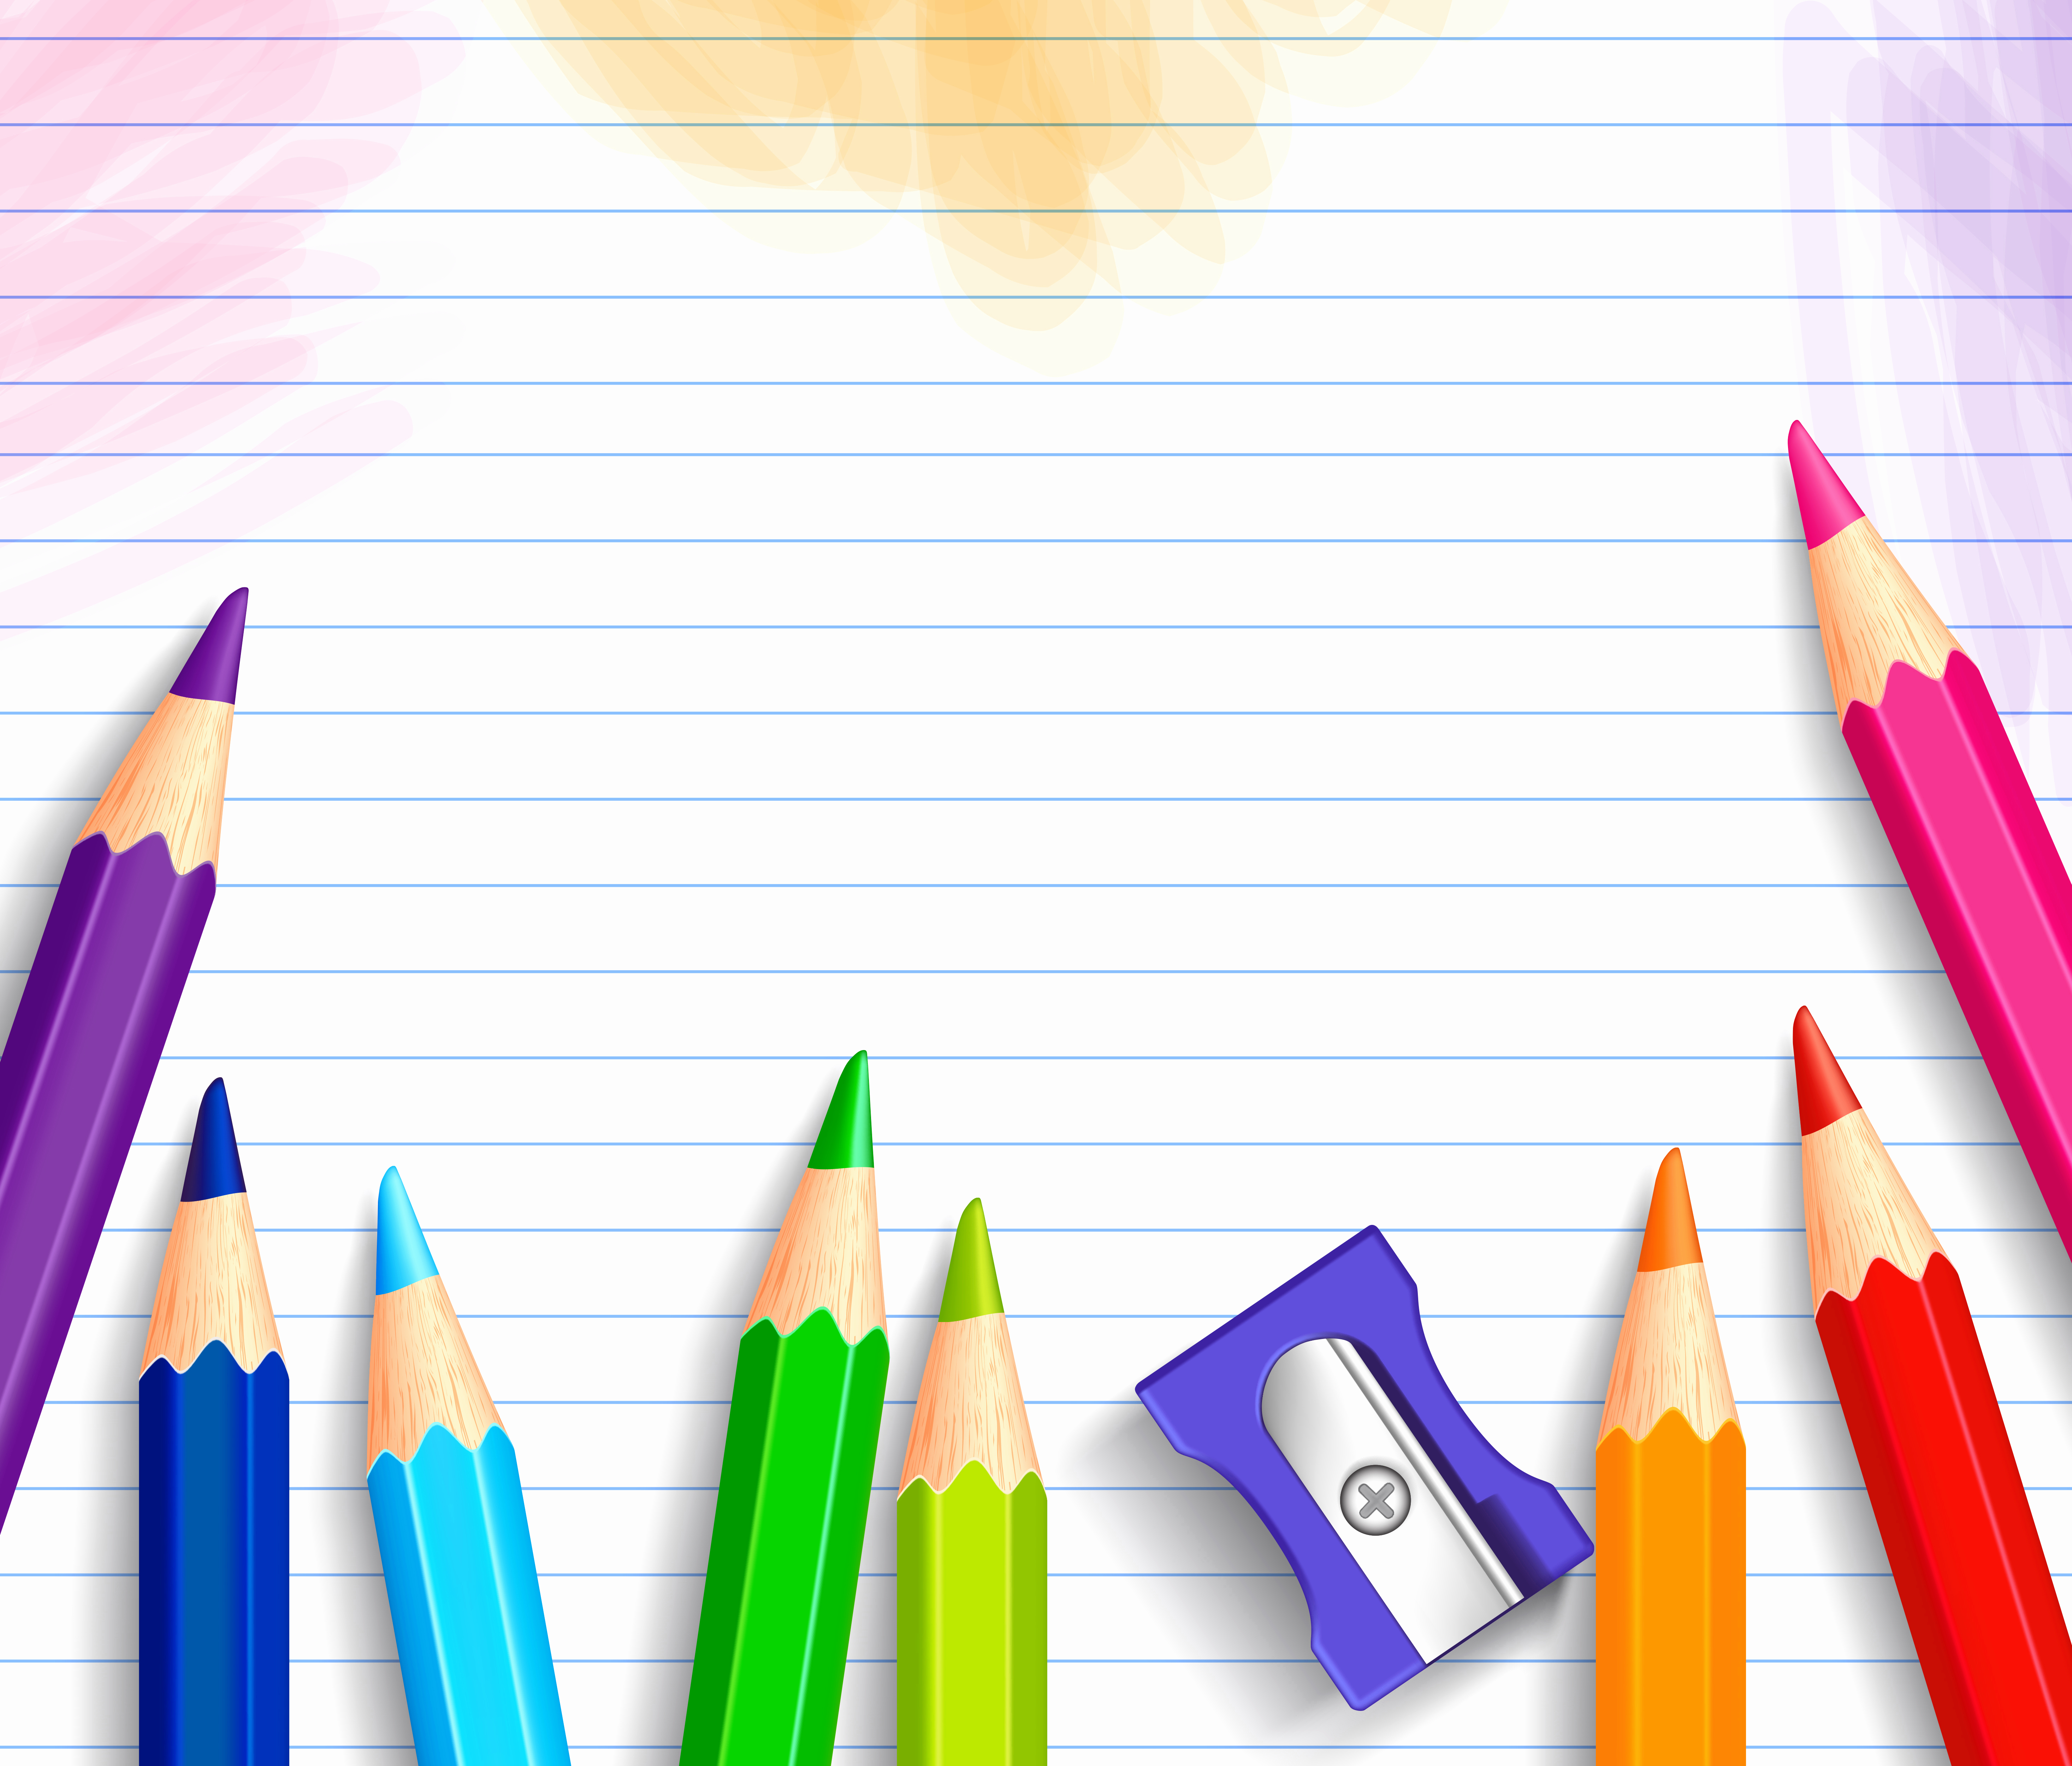 Cute School Backgrounds for Powerpoint New School Background with Pencils